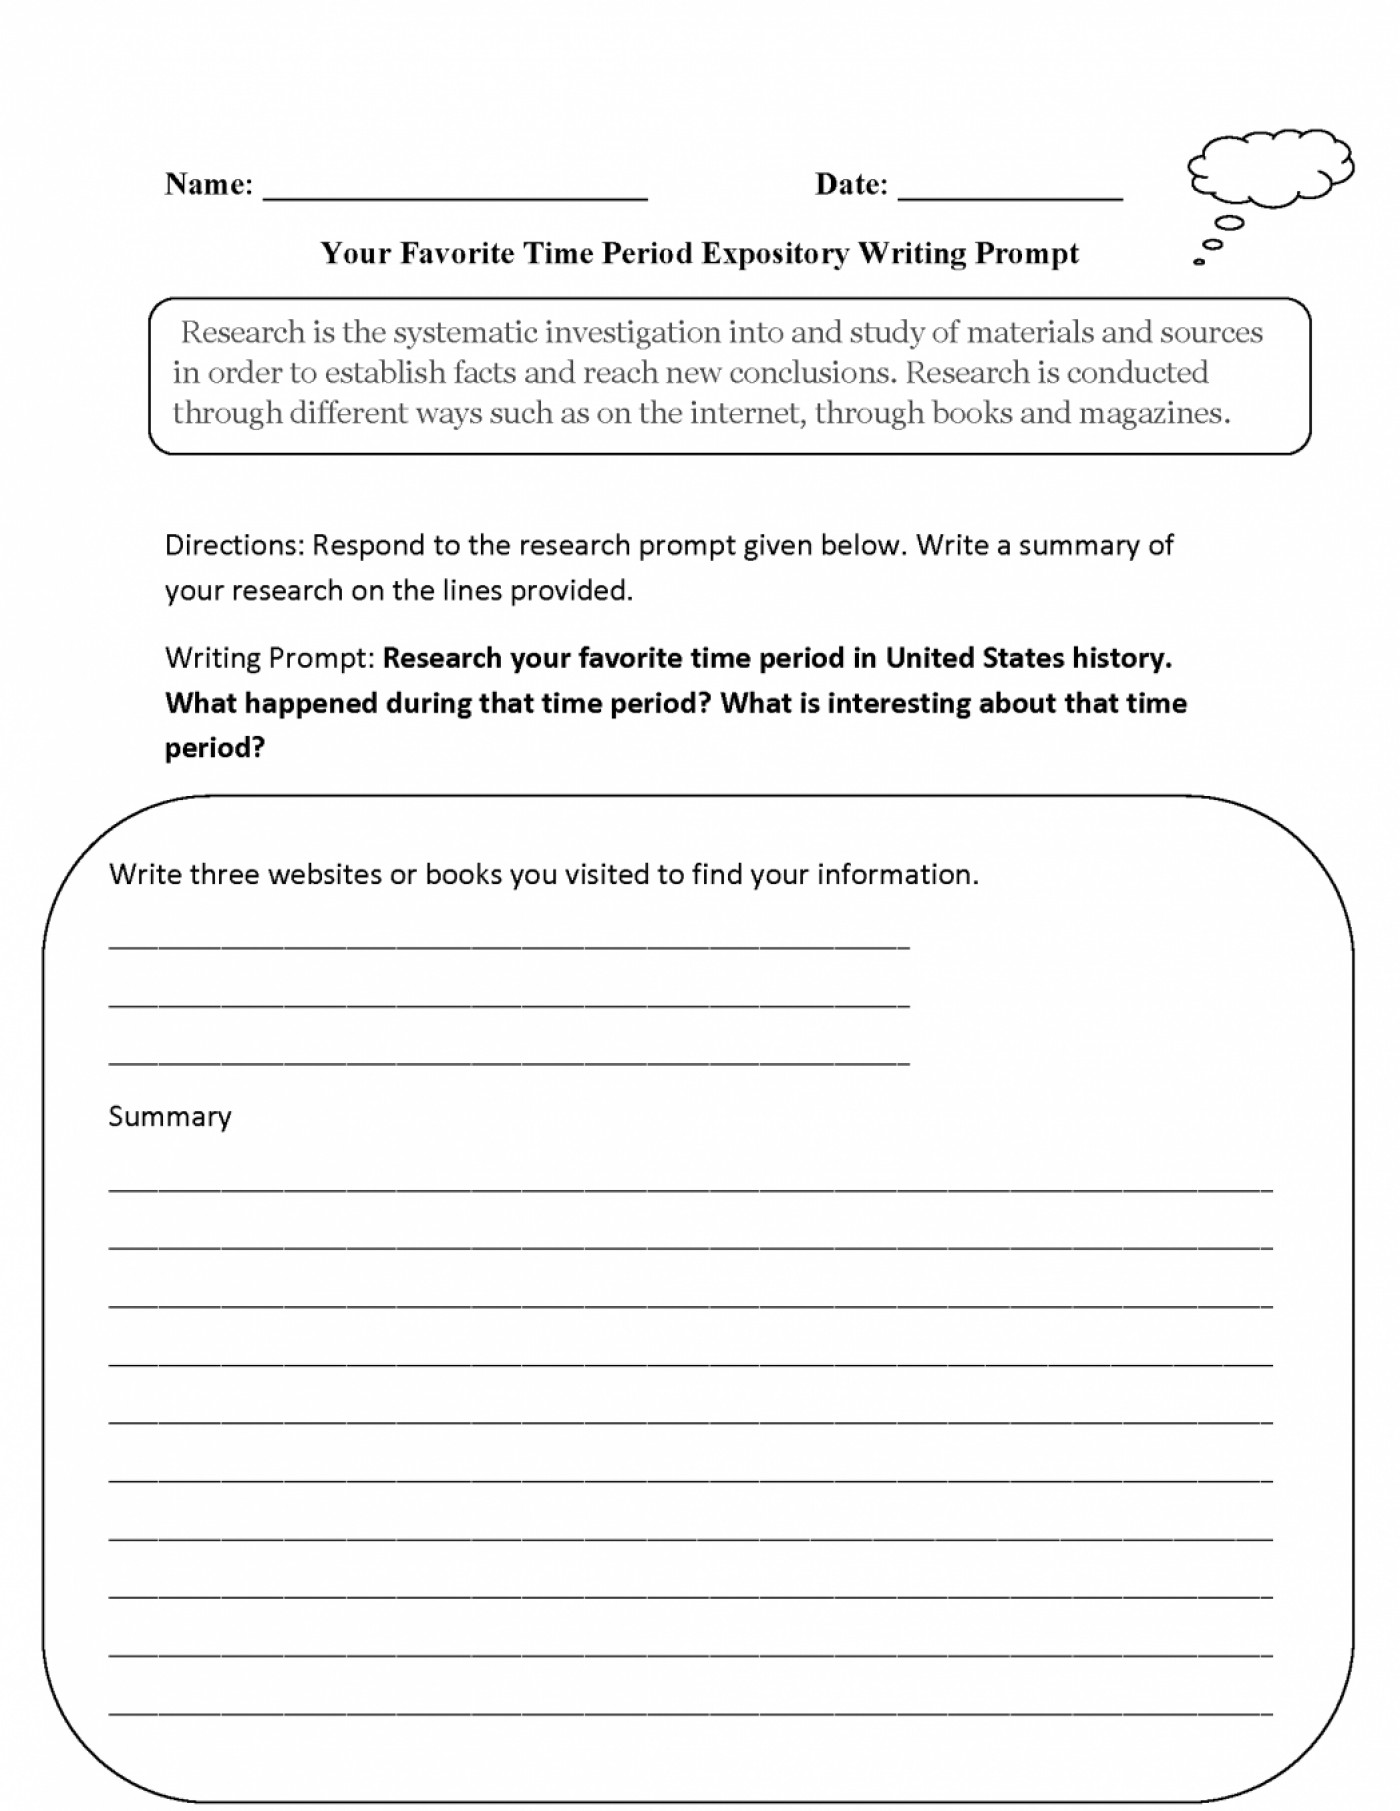 018 Essay Example Good Informative Topics Prompts Favorite Time Period Expository Writing P To Write An On The Topic Of Immigration Remarkable For High School 4th Grade 1400